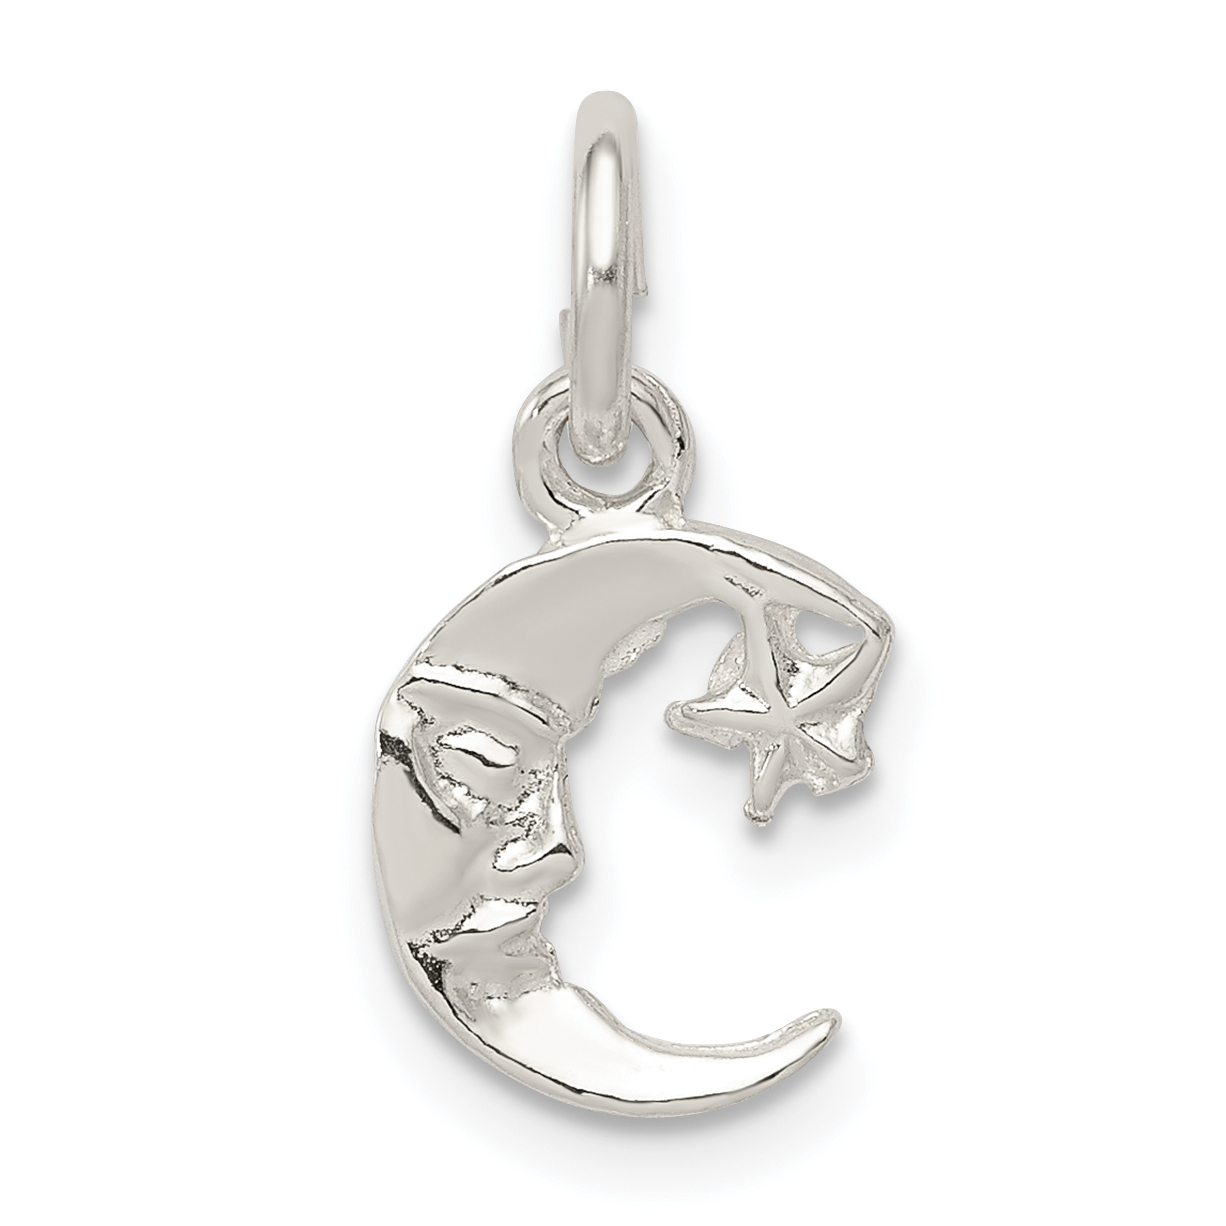 Celestial Pendant NEW 925 Sterling Silver Crescent Moon and Star Charm